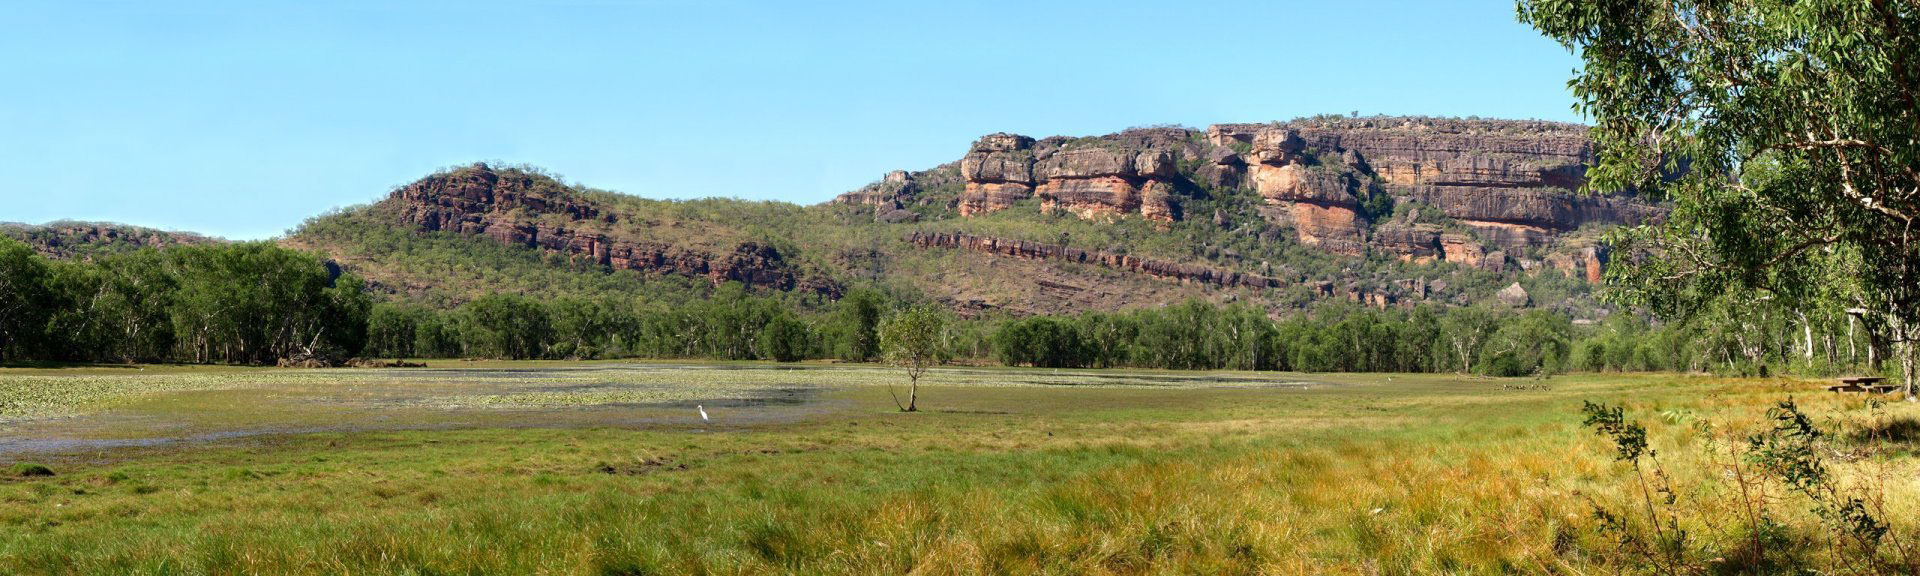 wlaking tracks and trails at anbangbang billabong in Kakadu